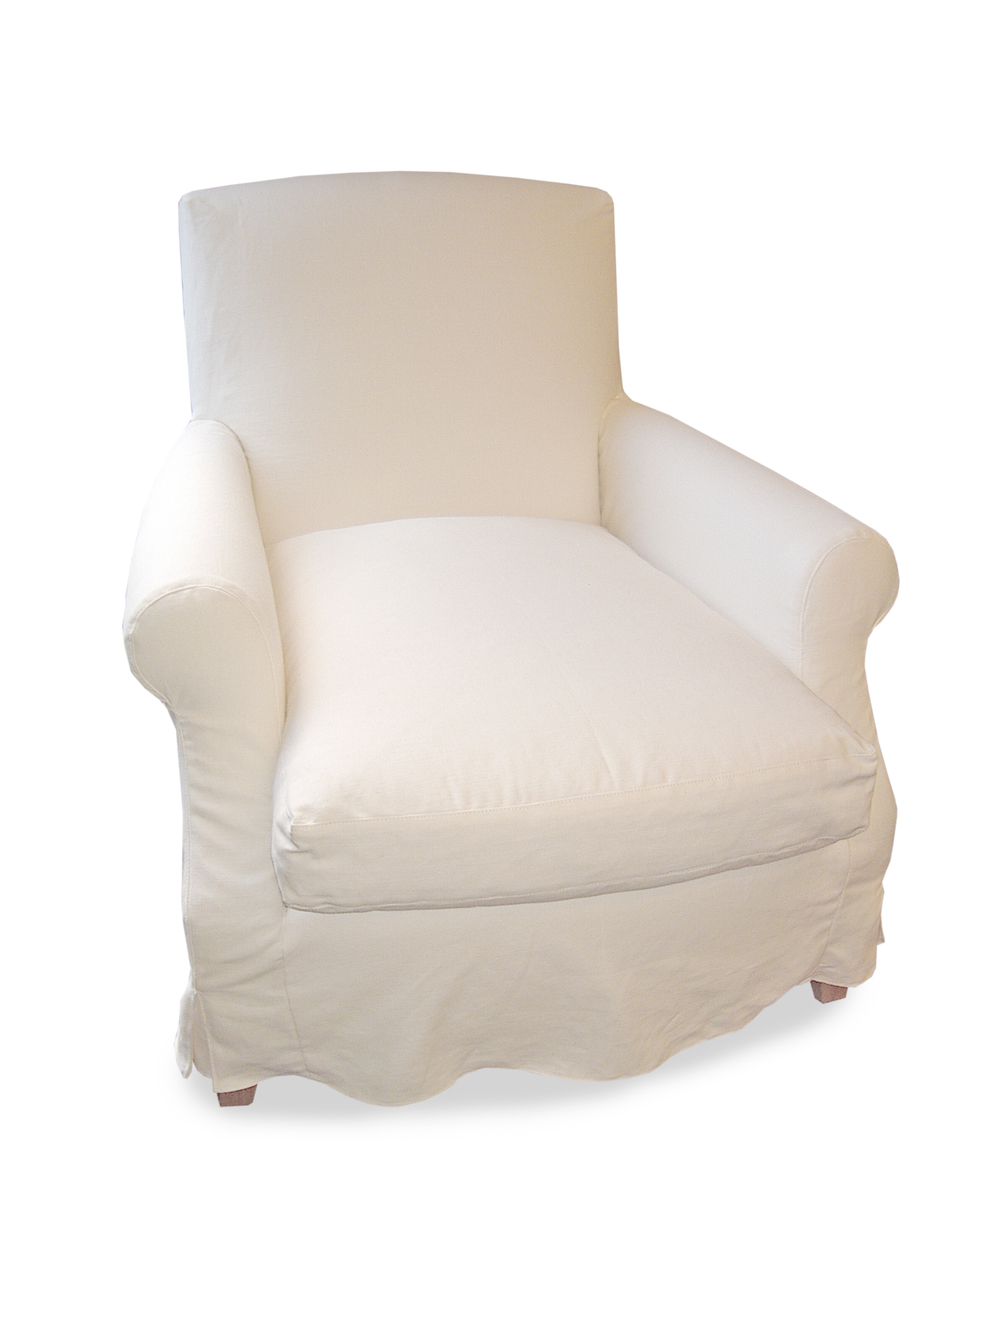 Lounge armchair with square tapering legs with  loose cover in white top-stitched linen with kick pleats, feather/down cushion